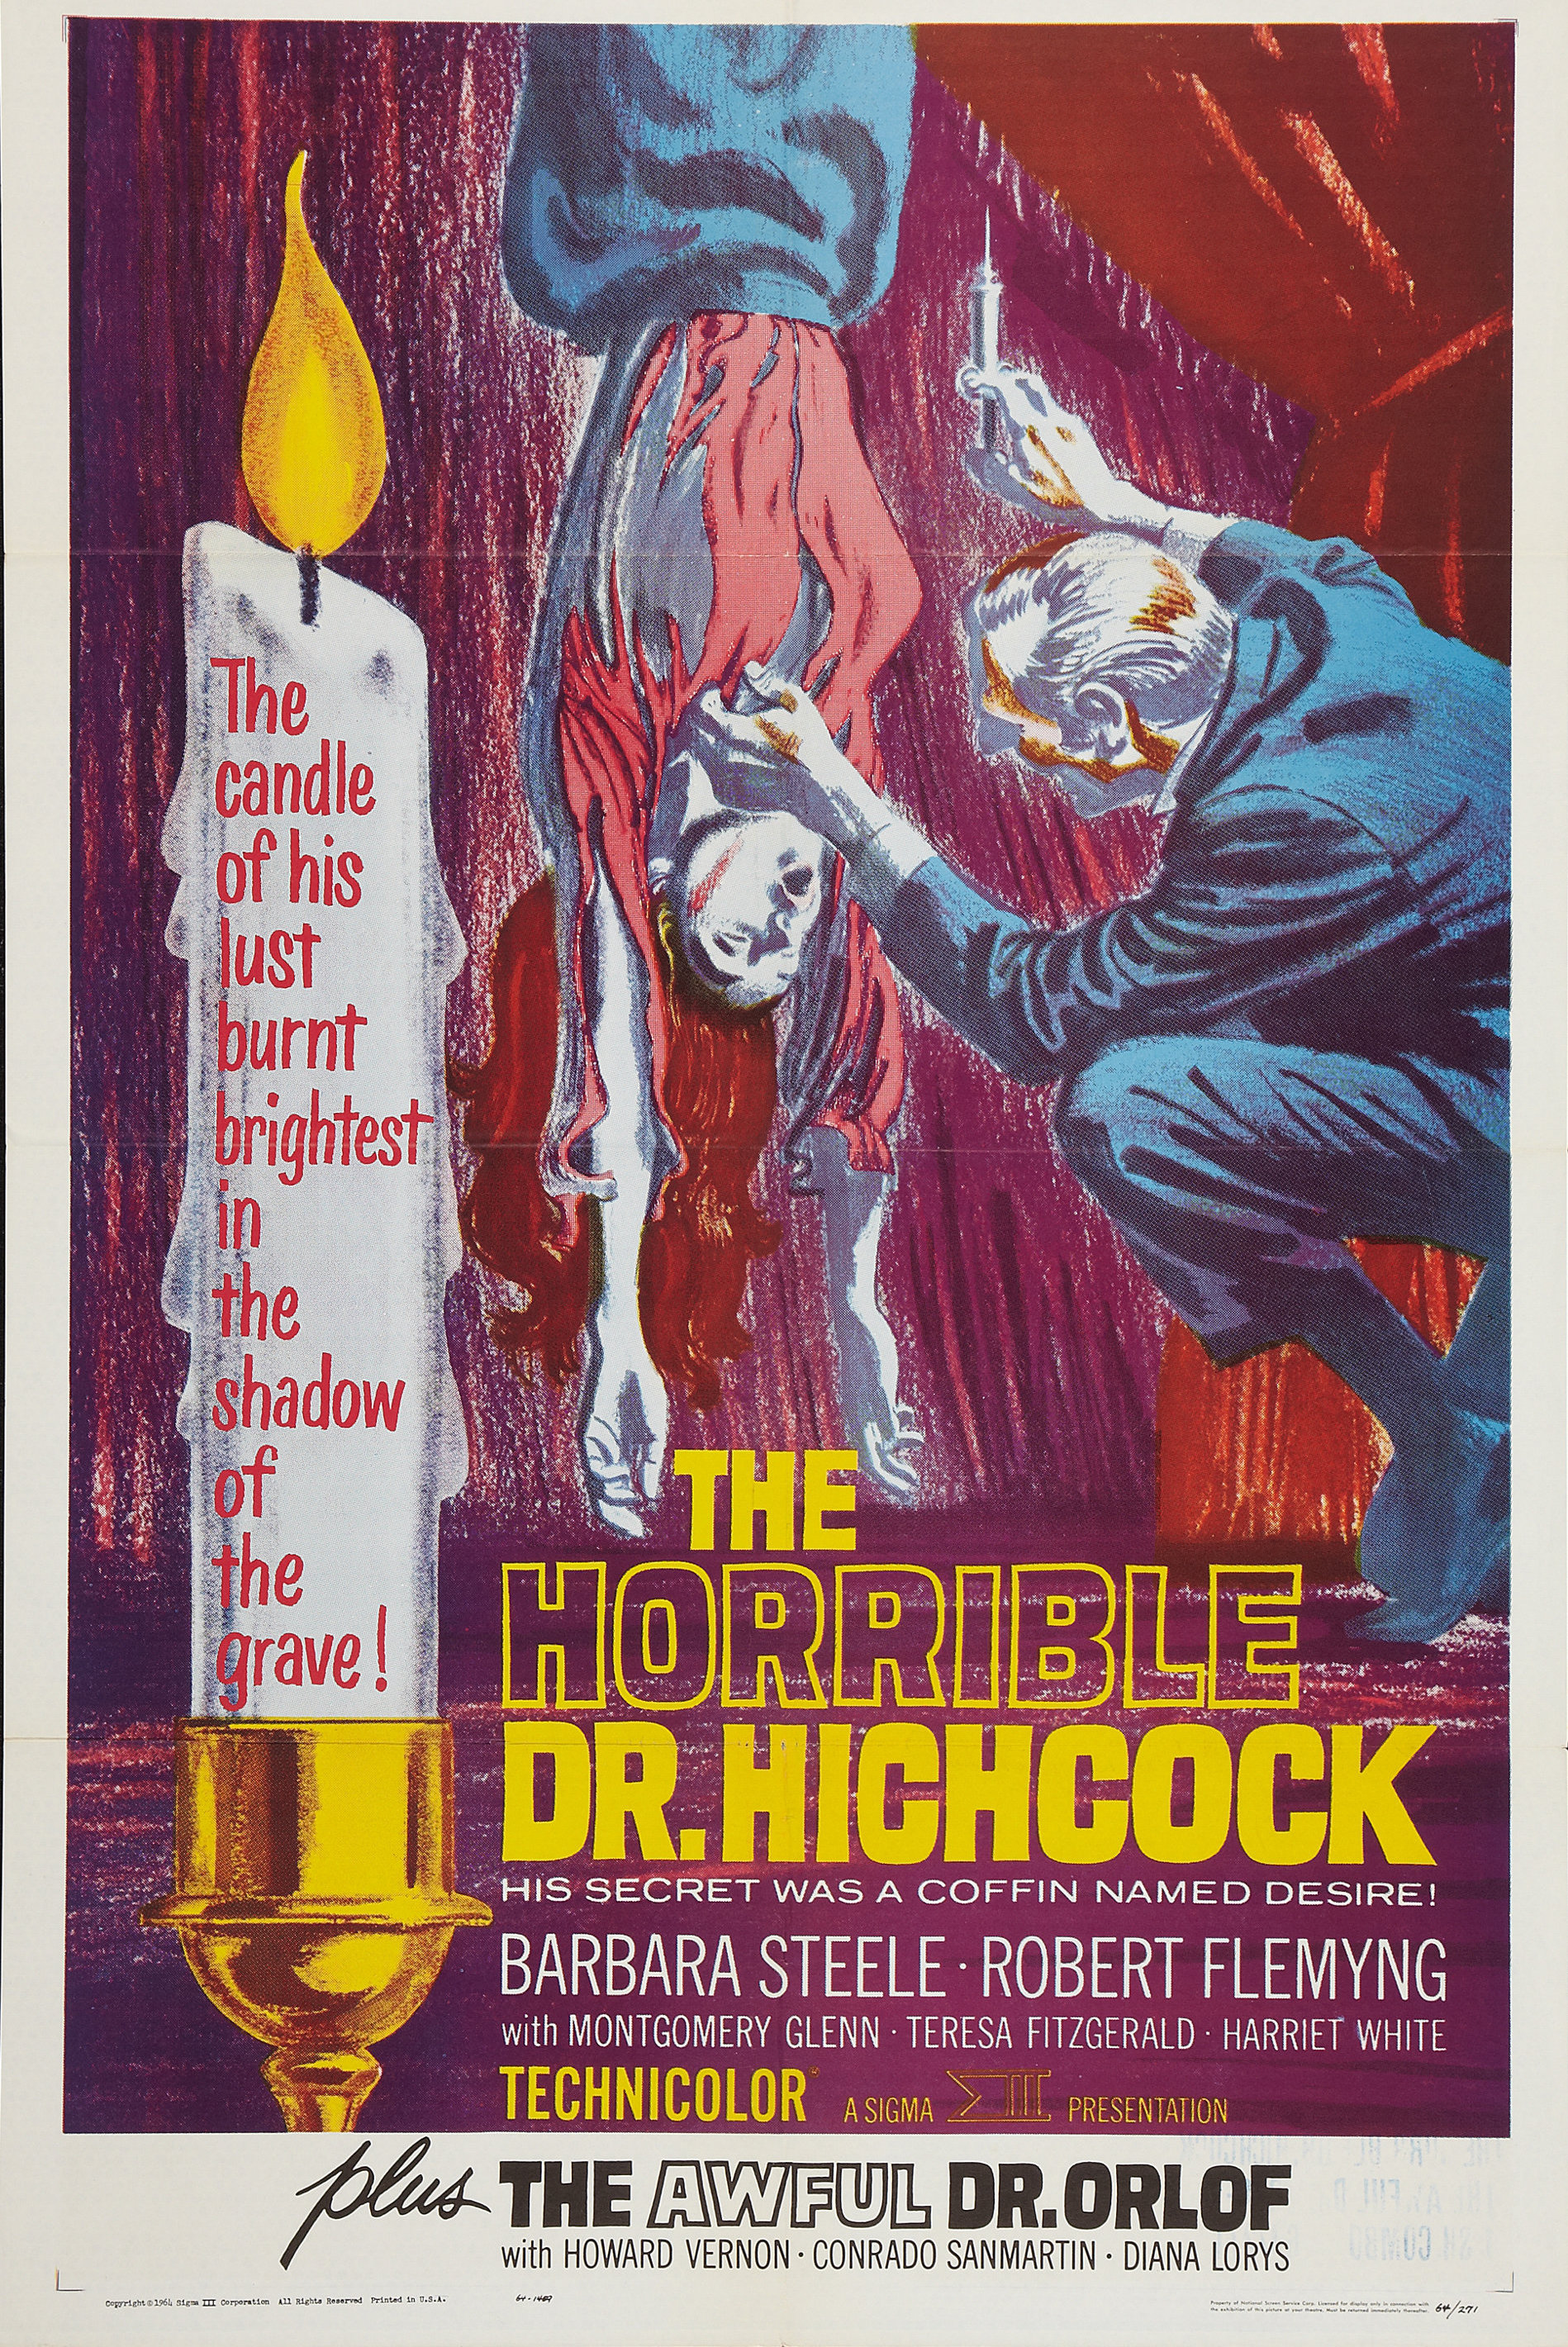 The_Horrible_DR_Hitchcock_1